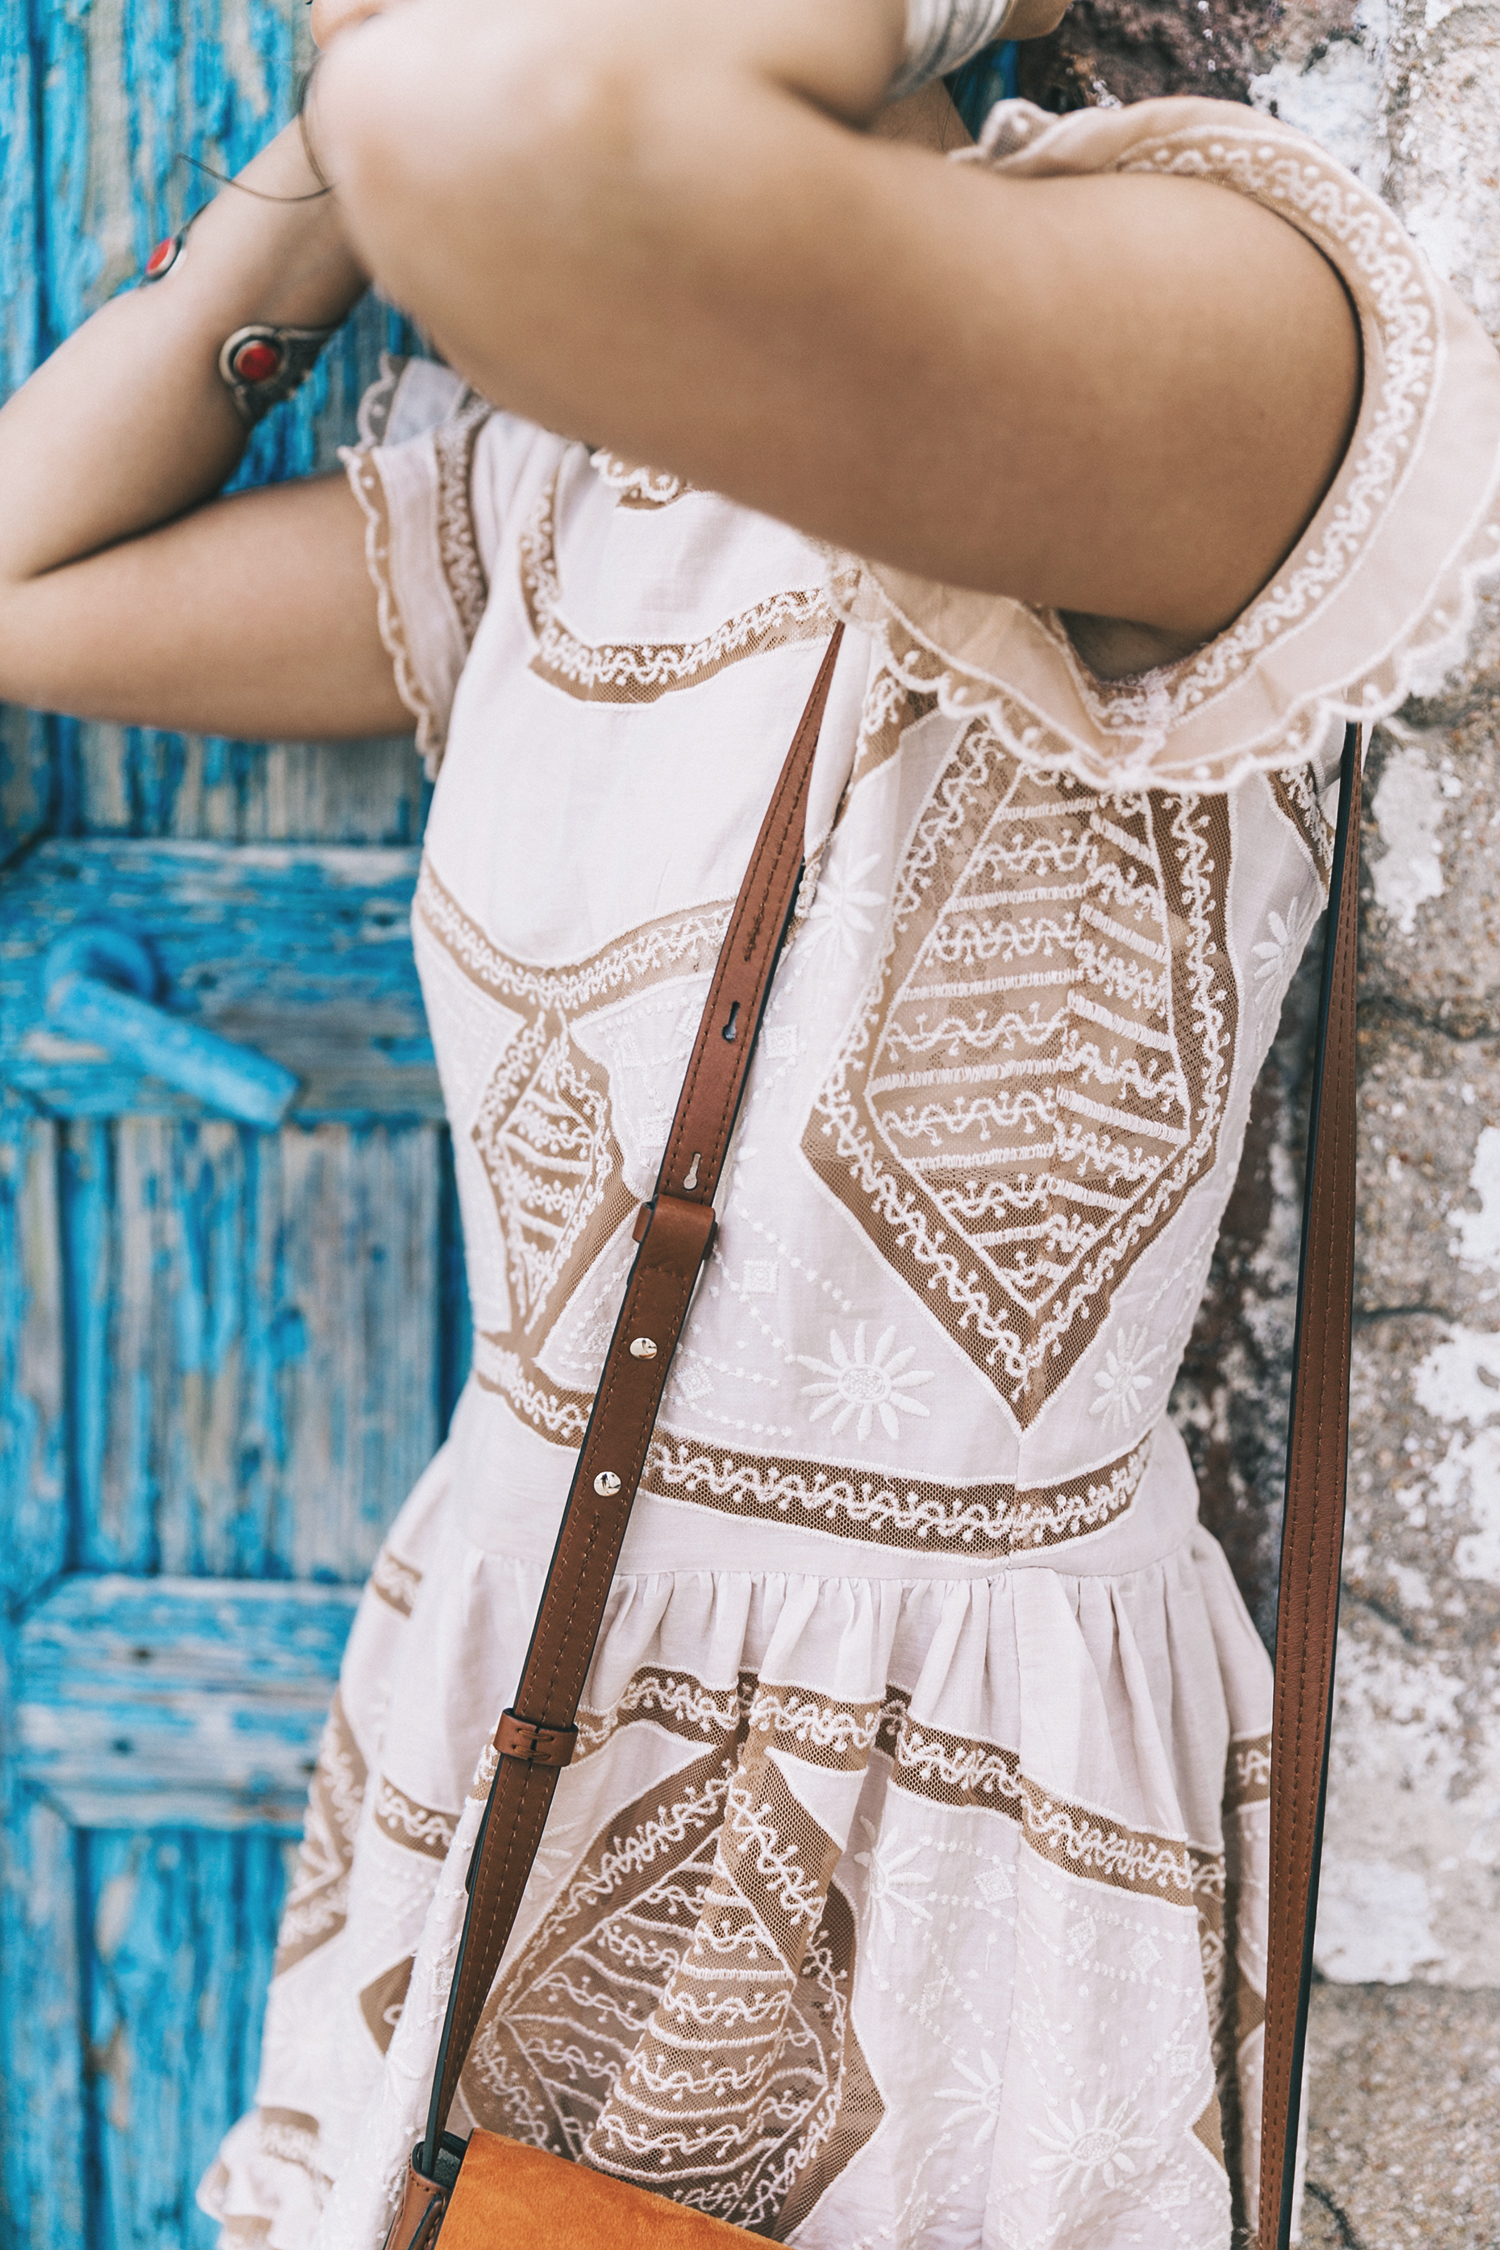 Chloe_Bag-Faye_Bag-For_Love_And_Lemons-Dress-Topknot-Soludos_Escapes-Soludos_Espadrilles-Summer-Santorini-Collage_Vintage-68